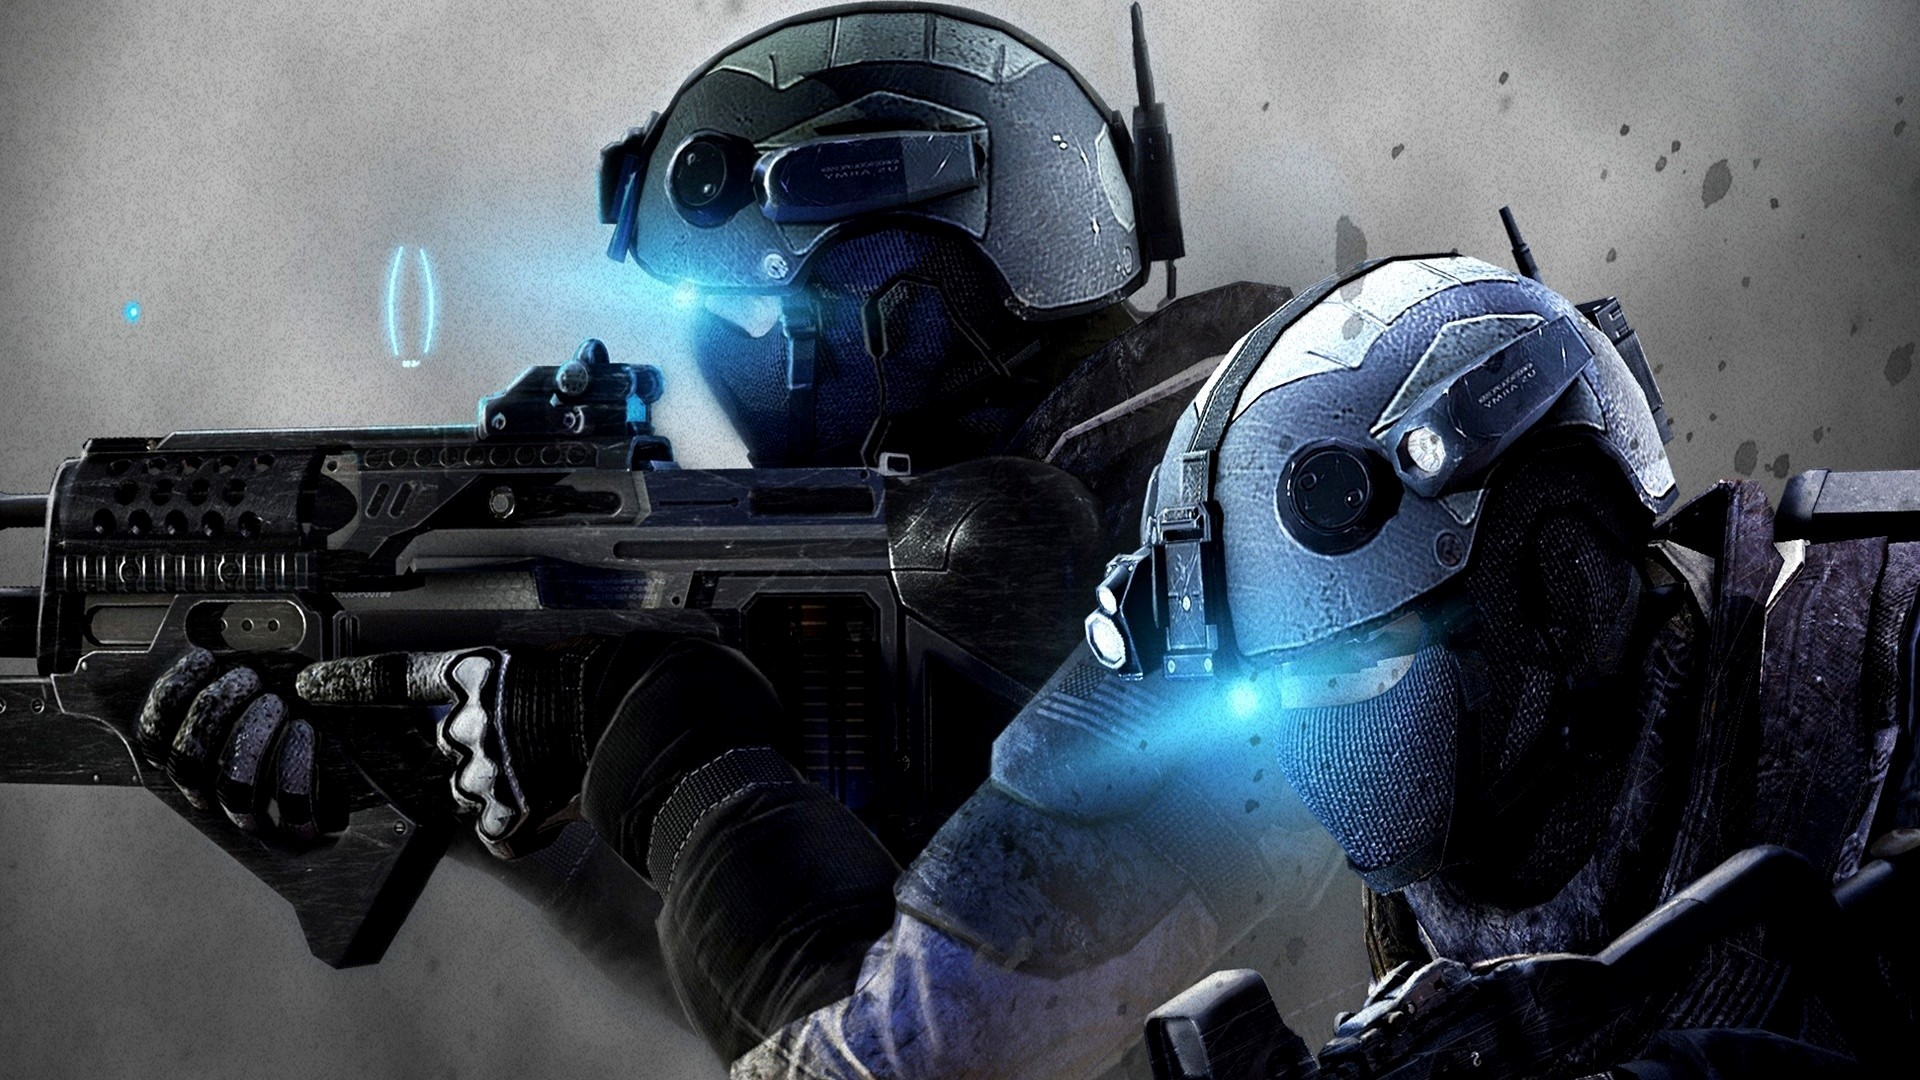 Soldier Action Game Wallpaper HD Wallpapers 1920x1080